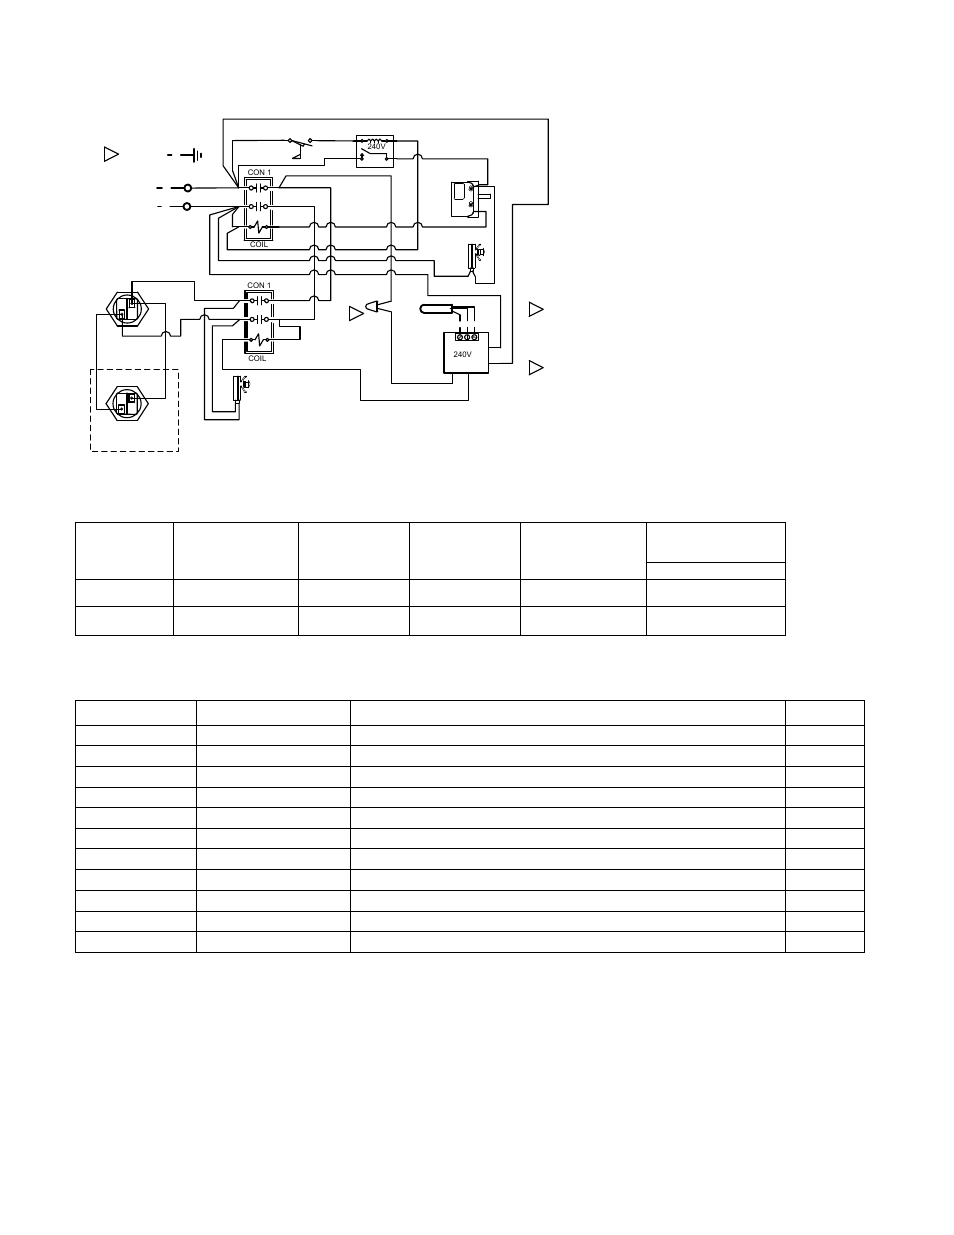 coates-st-series-55-11kw-240v-single-phase-page4  Pole Amp Contactor Wiring Diagram on rv inverter, welder outlet, rv pedestal, welding receptacle, rv generator, rv service box, rv extension cord, round rv power plug, rv power, gfci breaker, locking receptacle rv, 240 volt plug, trailer receptacle,